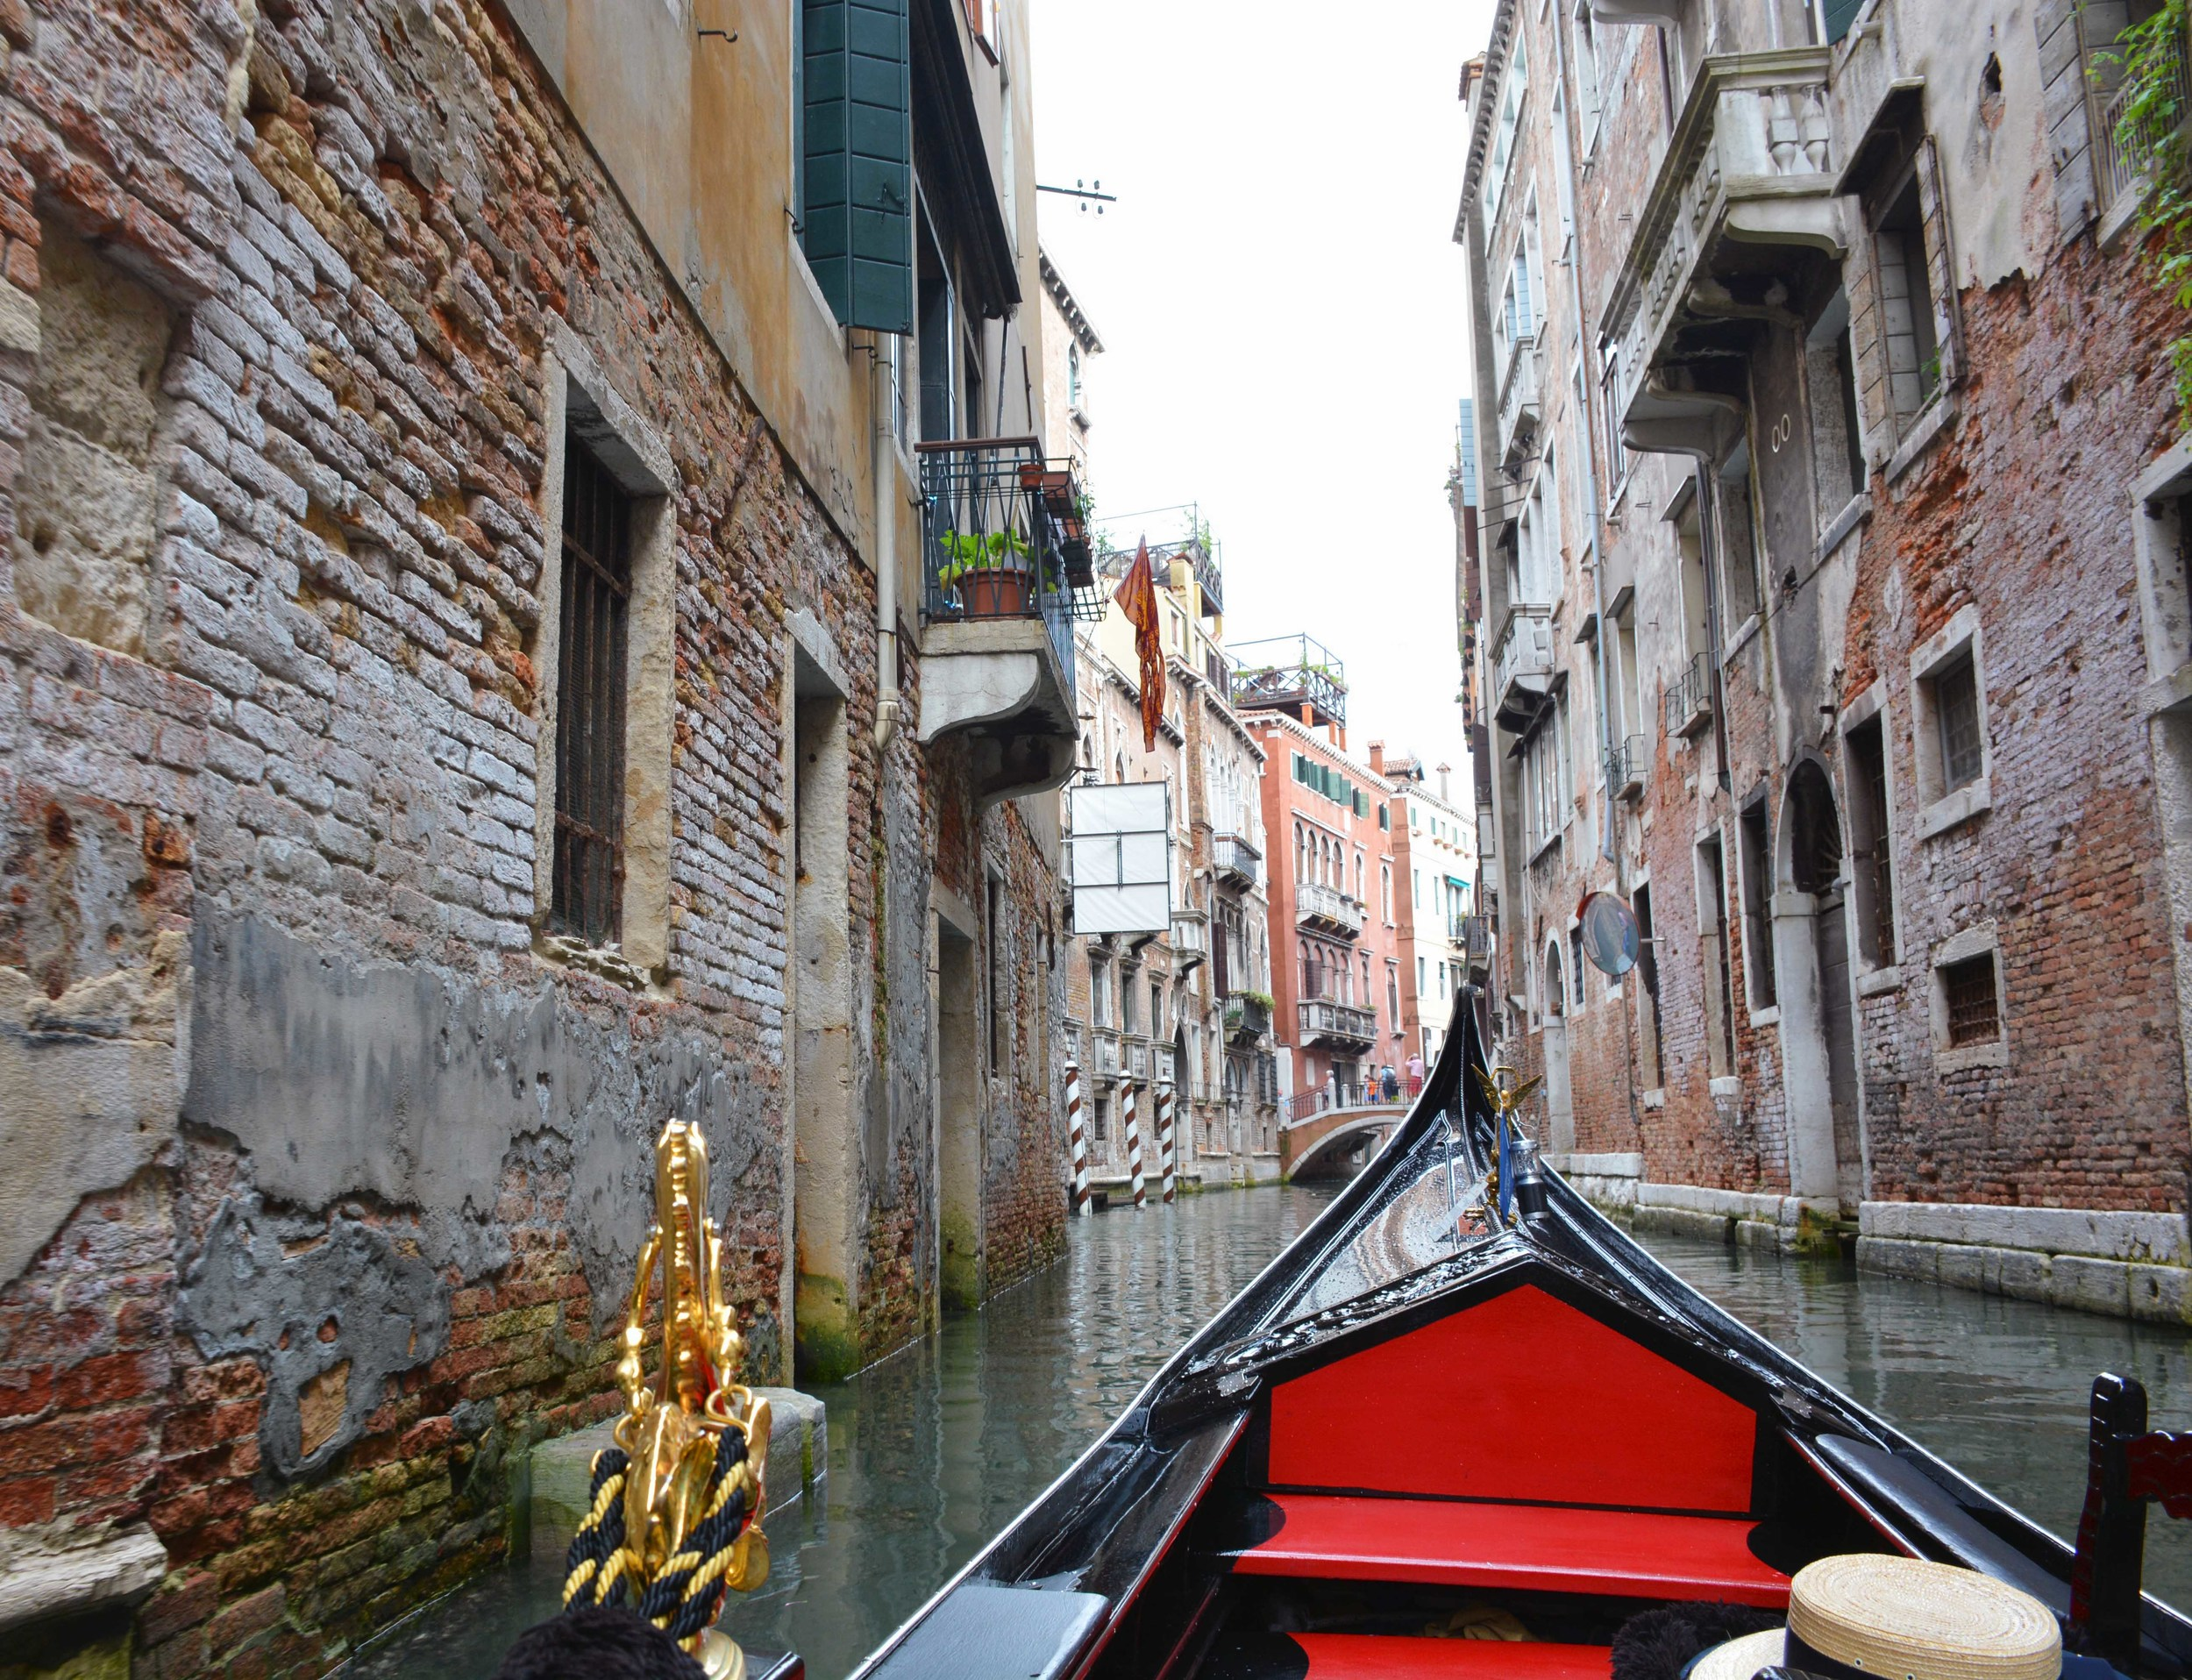 Gondola ride in Venice. Put it on your bucket list.